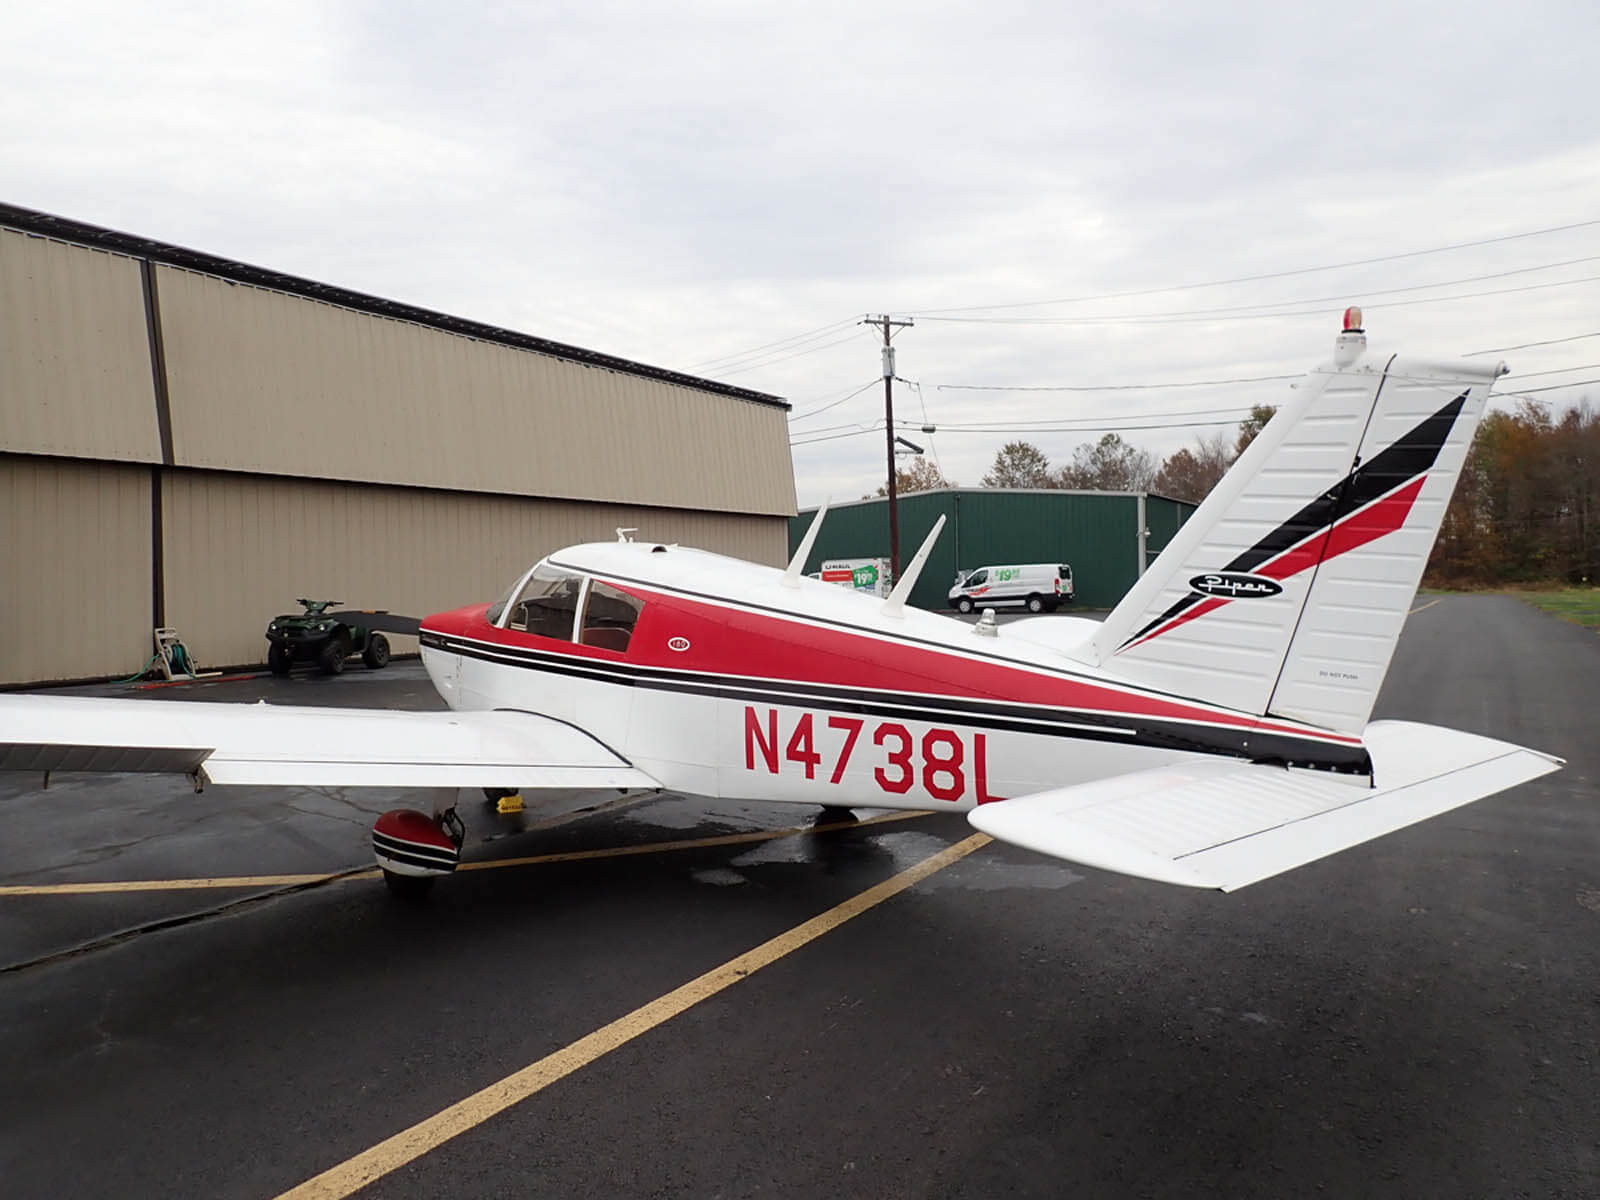 1966 Piper PA-28-180 - FOR SALE at Princeton Airport ~ Contact Ken Nierenberg at 609-731-4628 for details